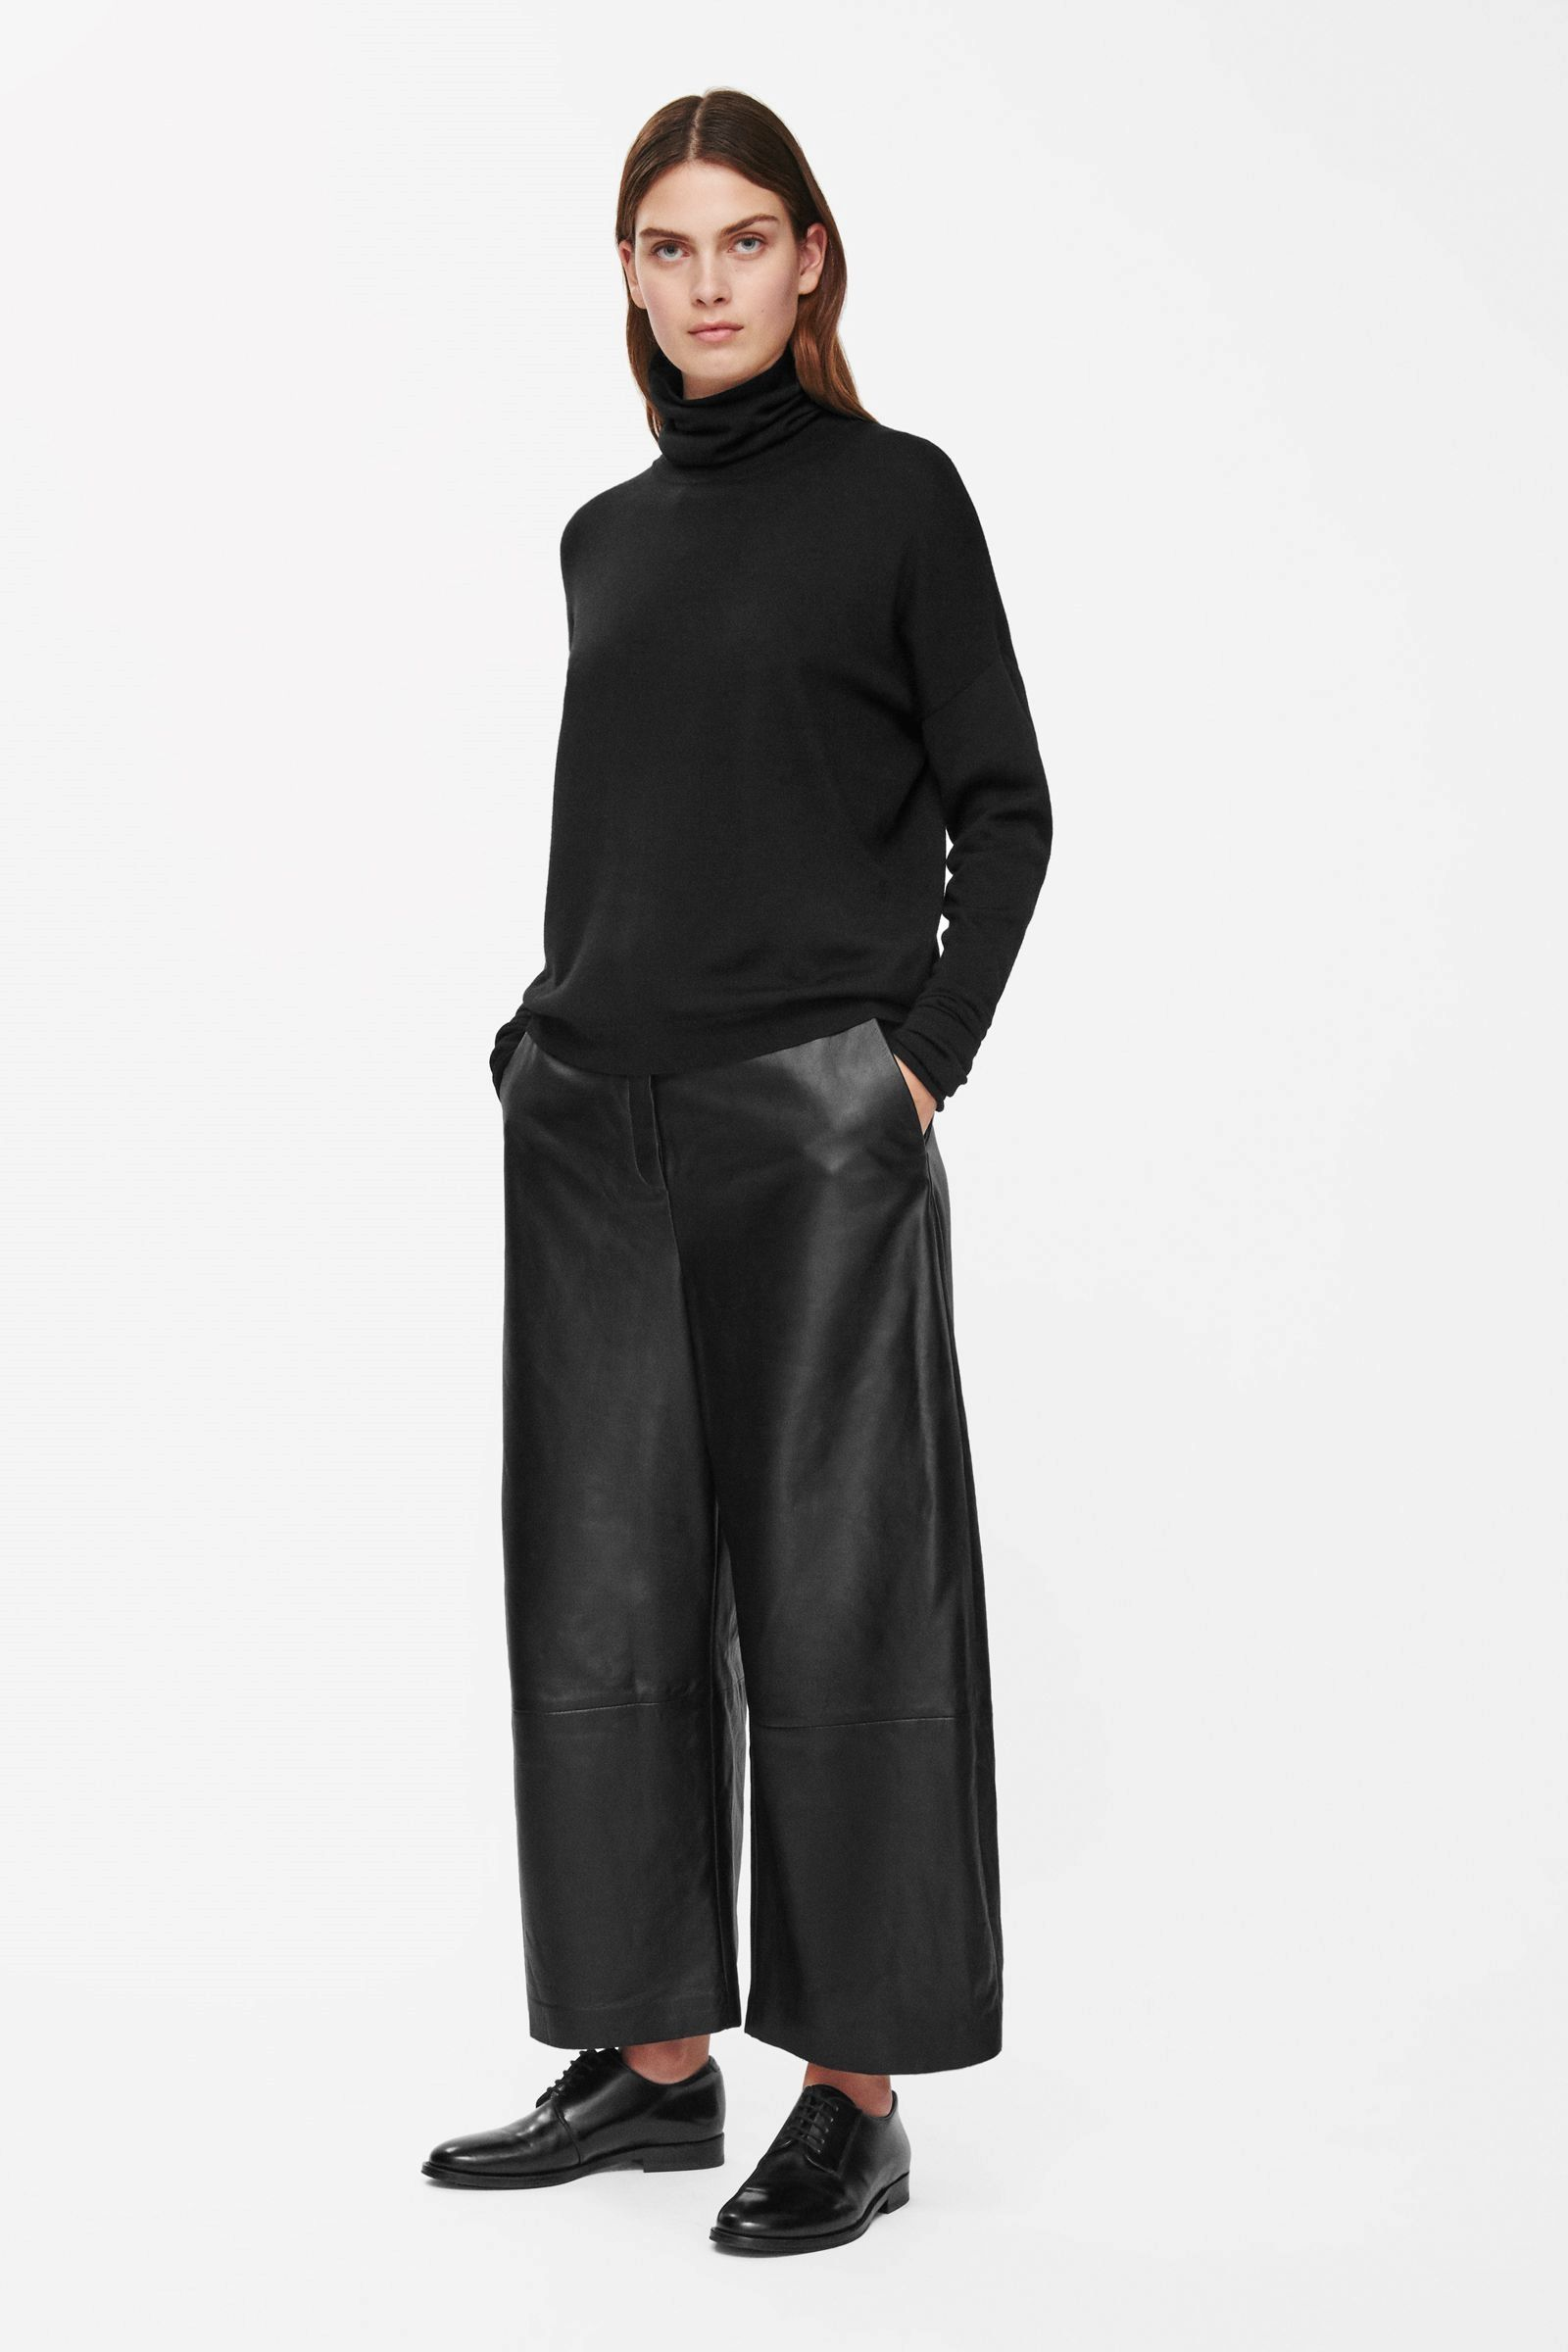 94ee9faa4a02 COS Wide-leg leather trousers | Lookbooks in 2019 | Leather trousers ...